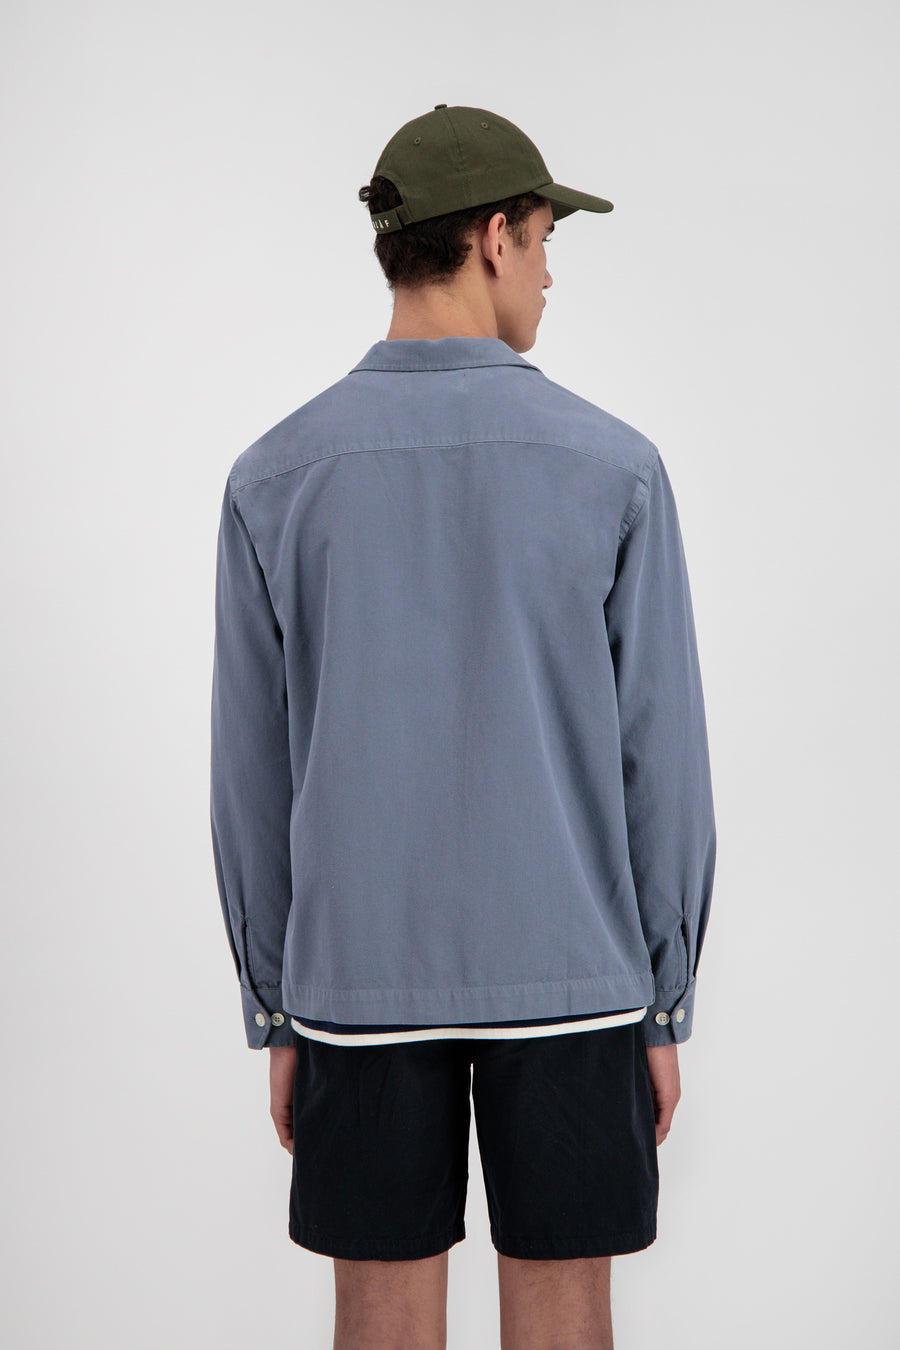 ØLÅF Overshirt <br>Steel Grey